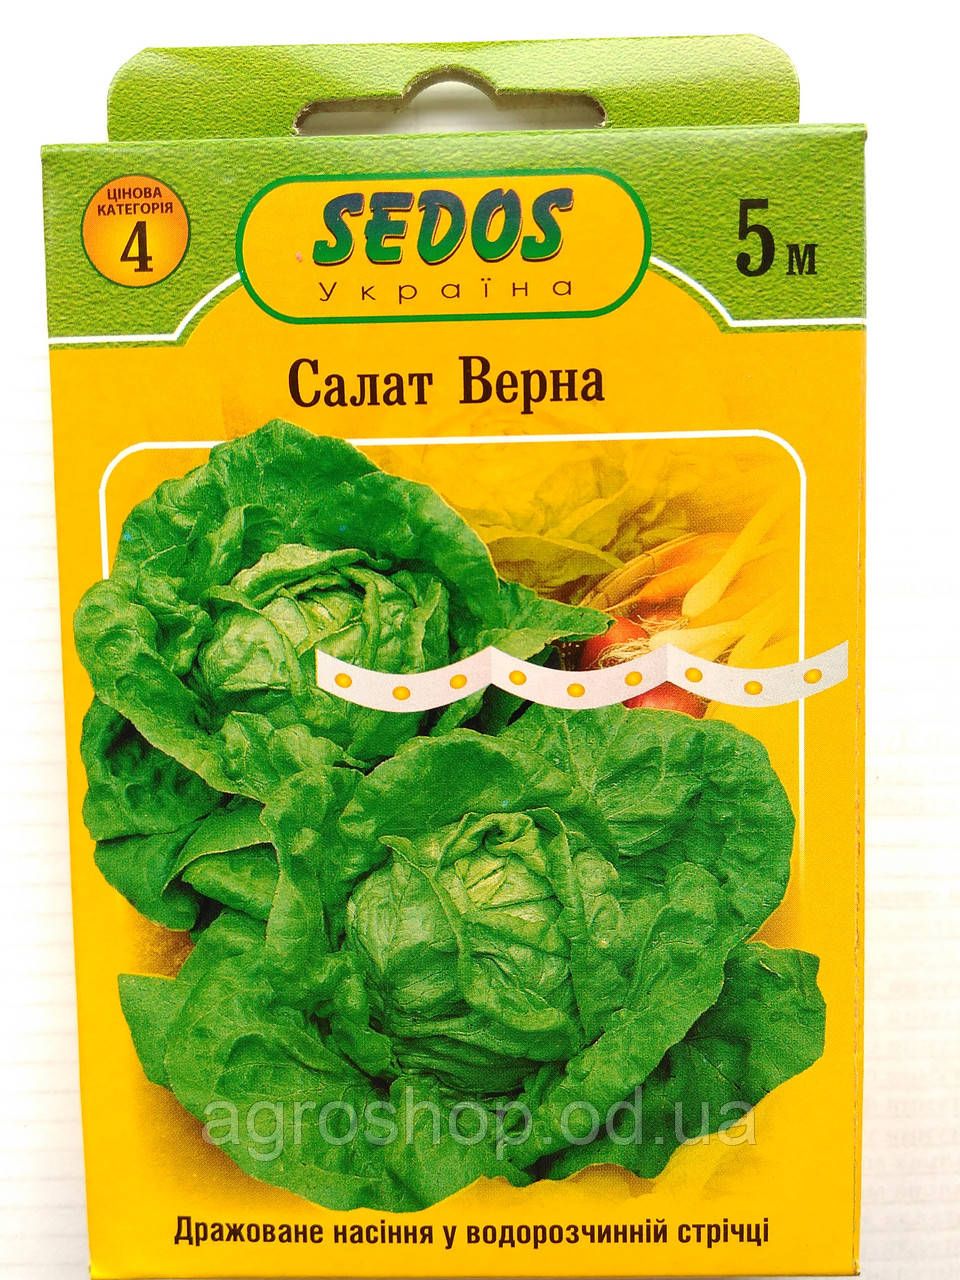 Салат Верна 5м